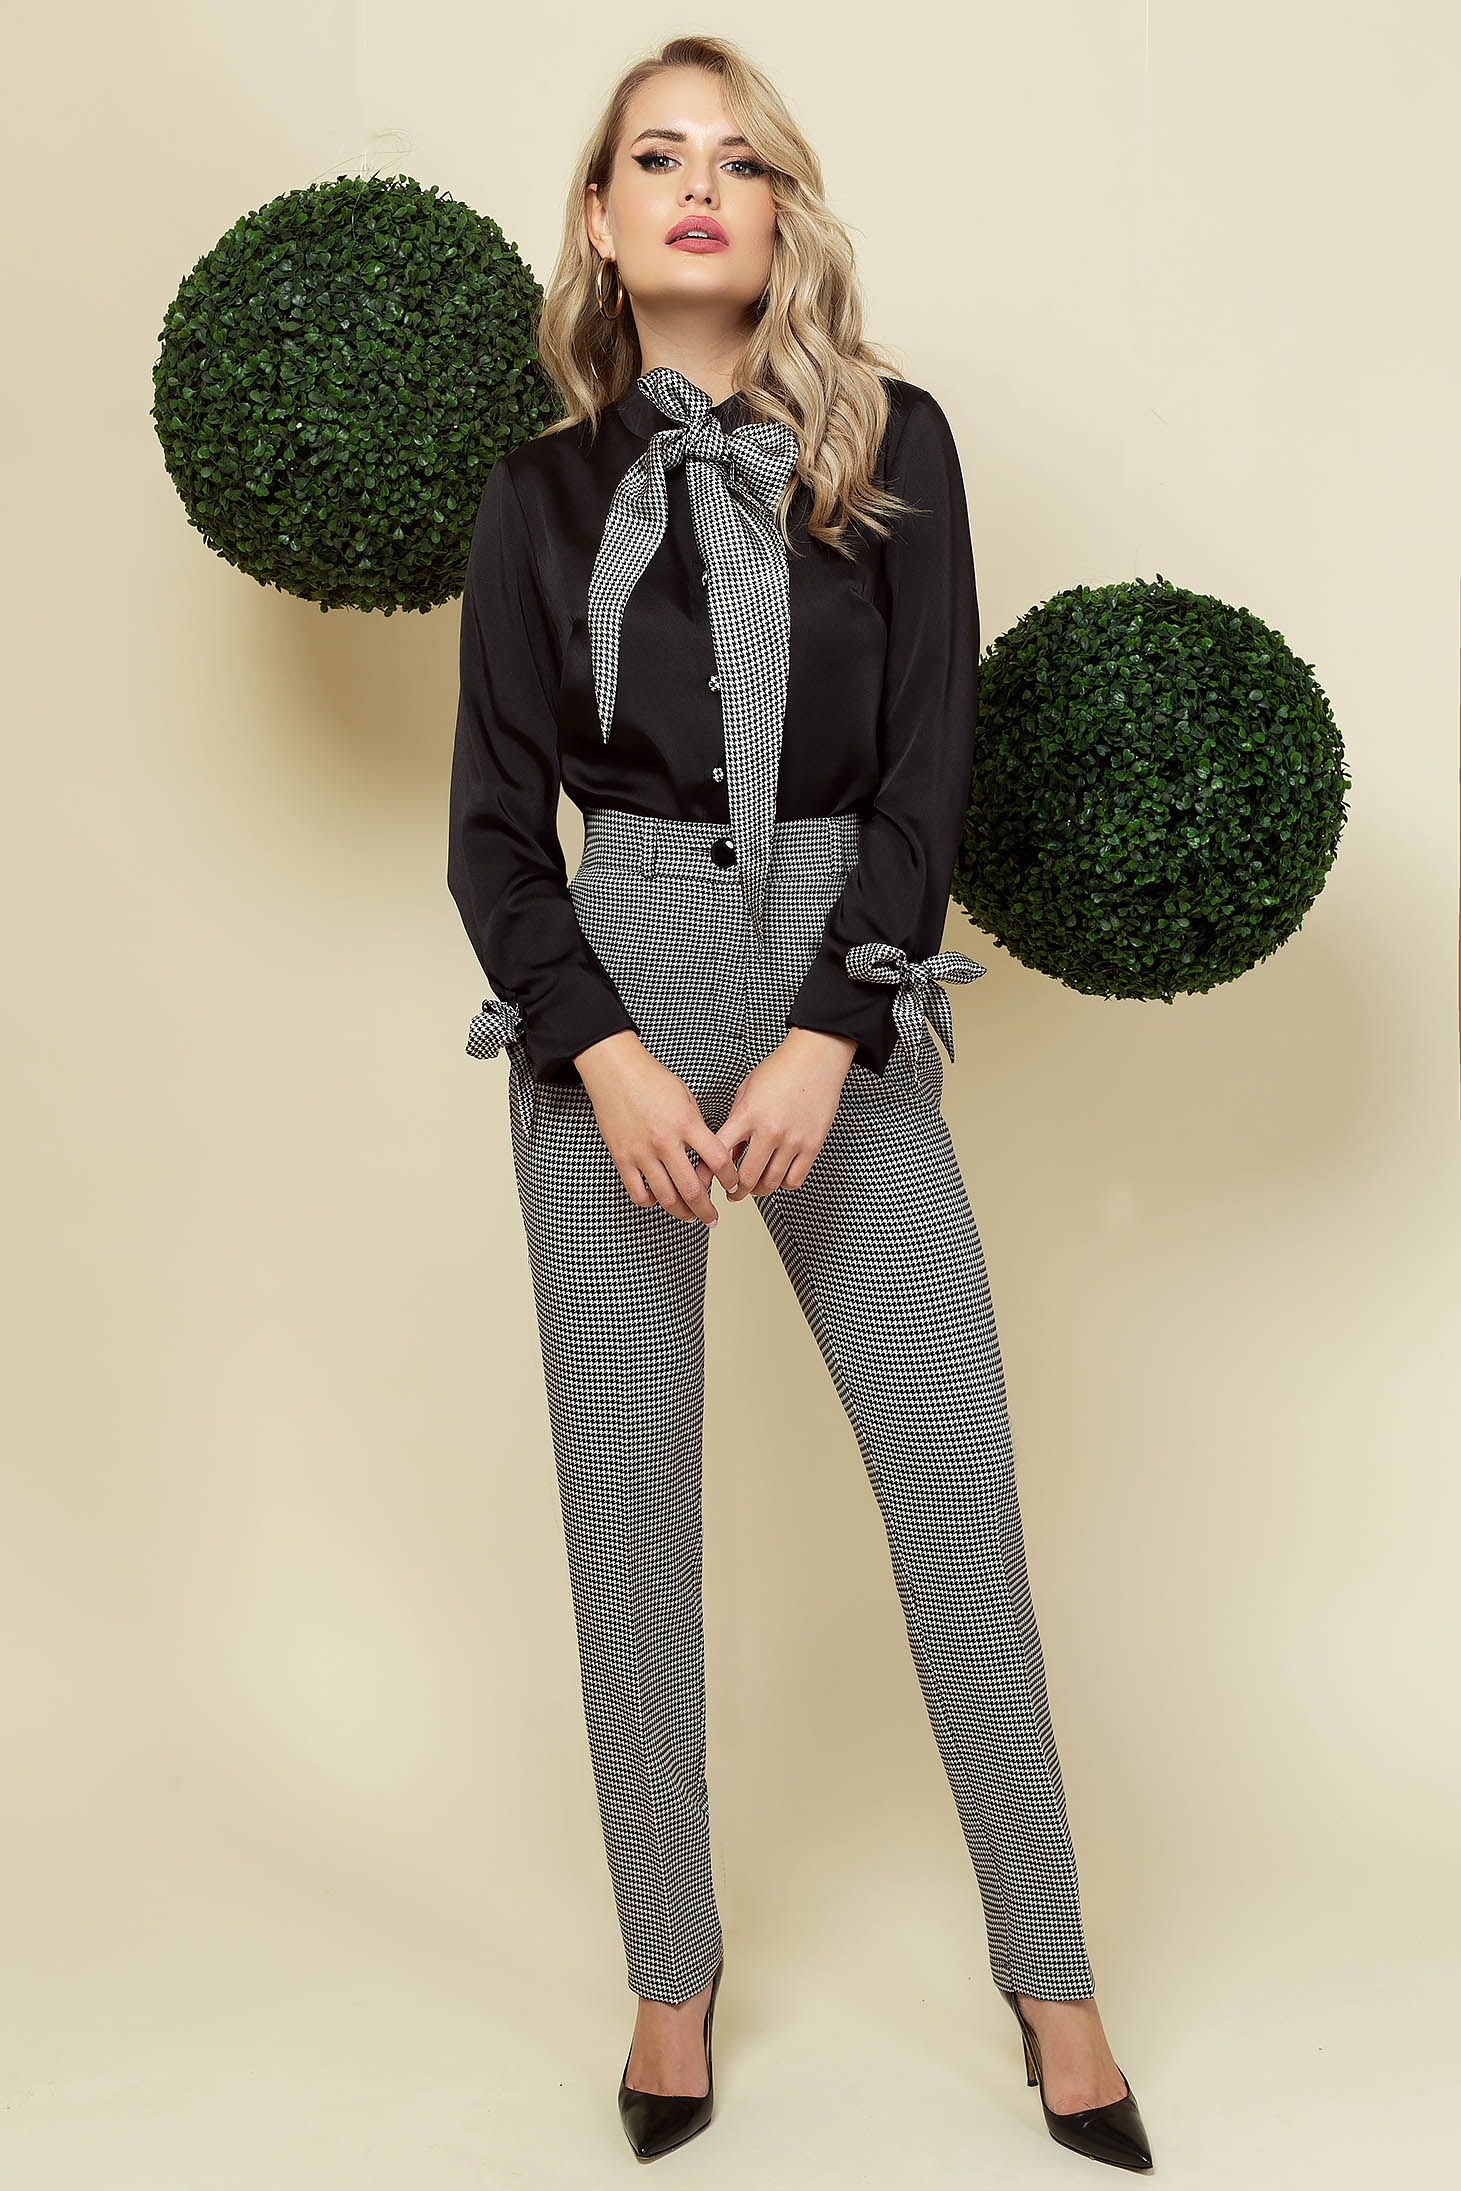 Black trousers office conical slightly elastic fabric with chequers